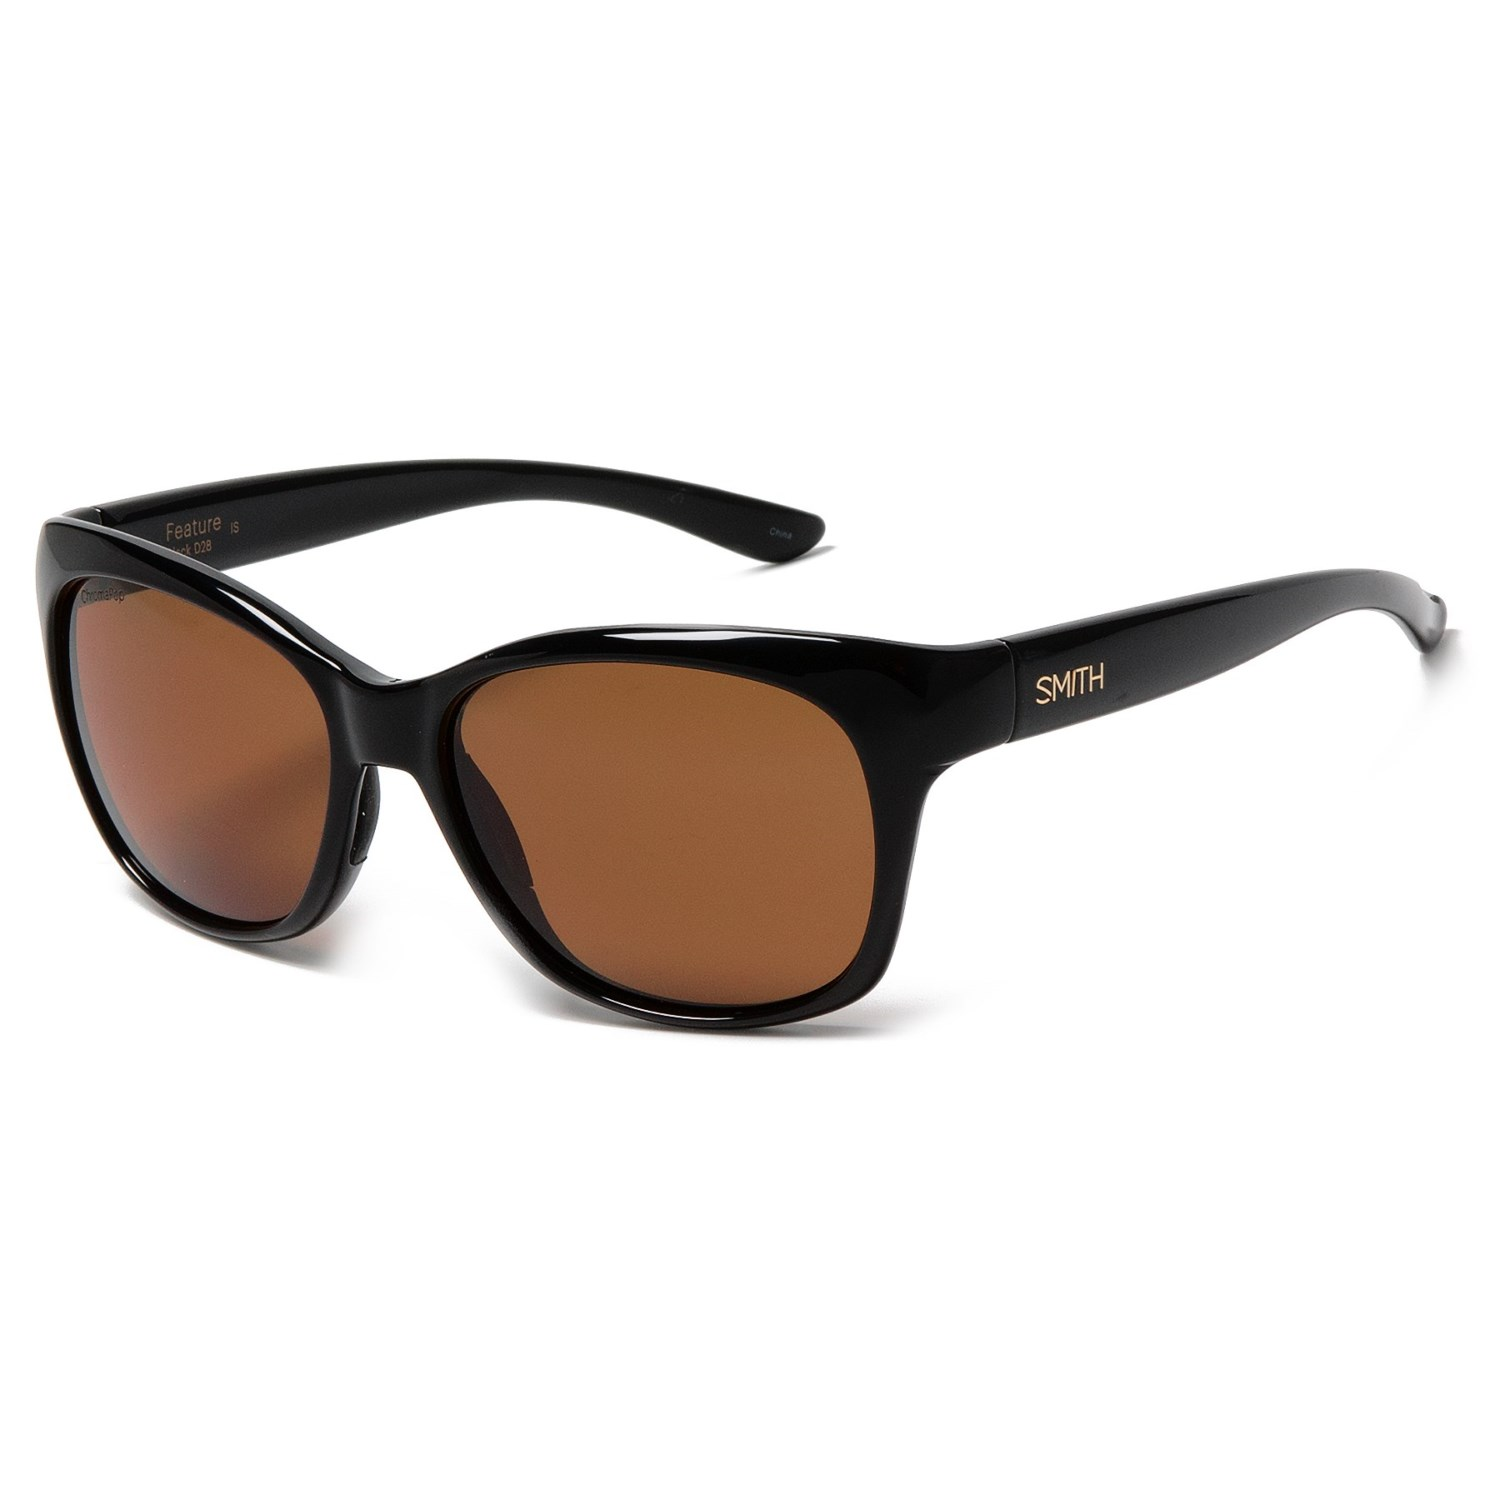 a7d3dcecf3d7 Smith Optics Feature Sunglasses - Polarized (For Women) in Black Brown. Tap  to expand